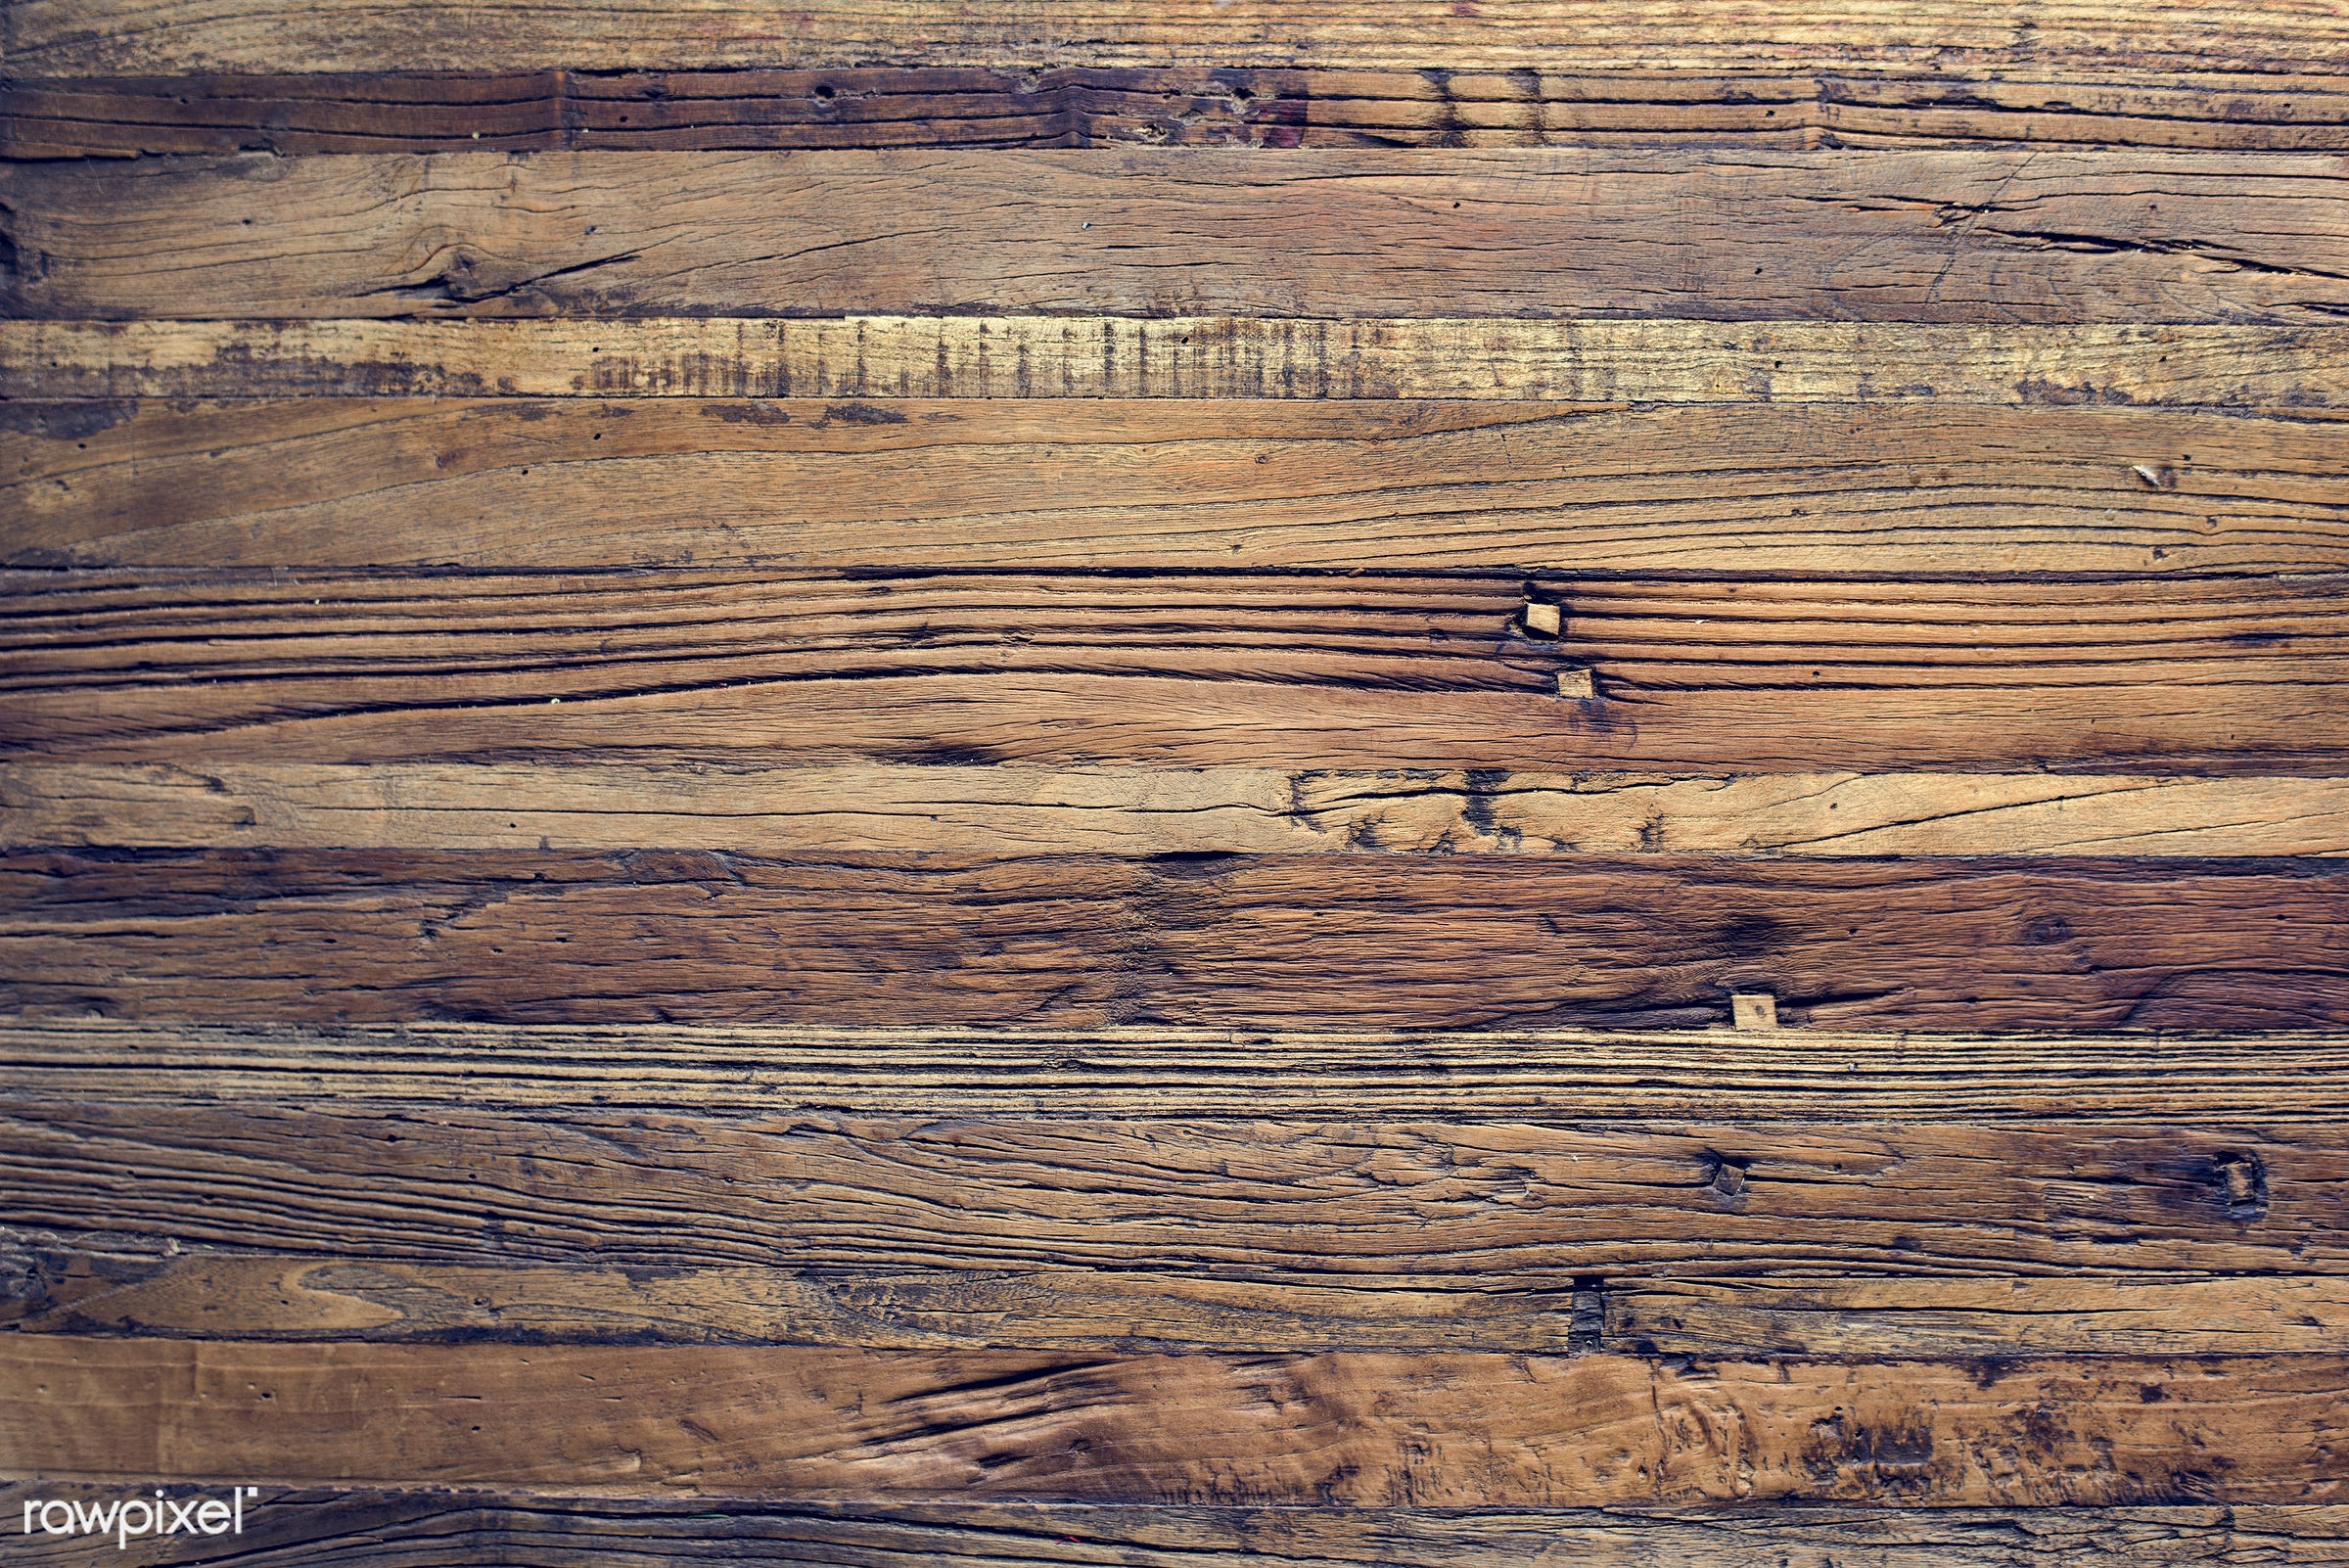 old, surface, wood, exterior, plank, grunge, ancient, timber, decorate, structure, obsolete, woodwork, wooden, frame,...